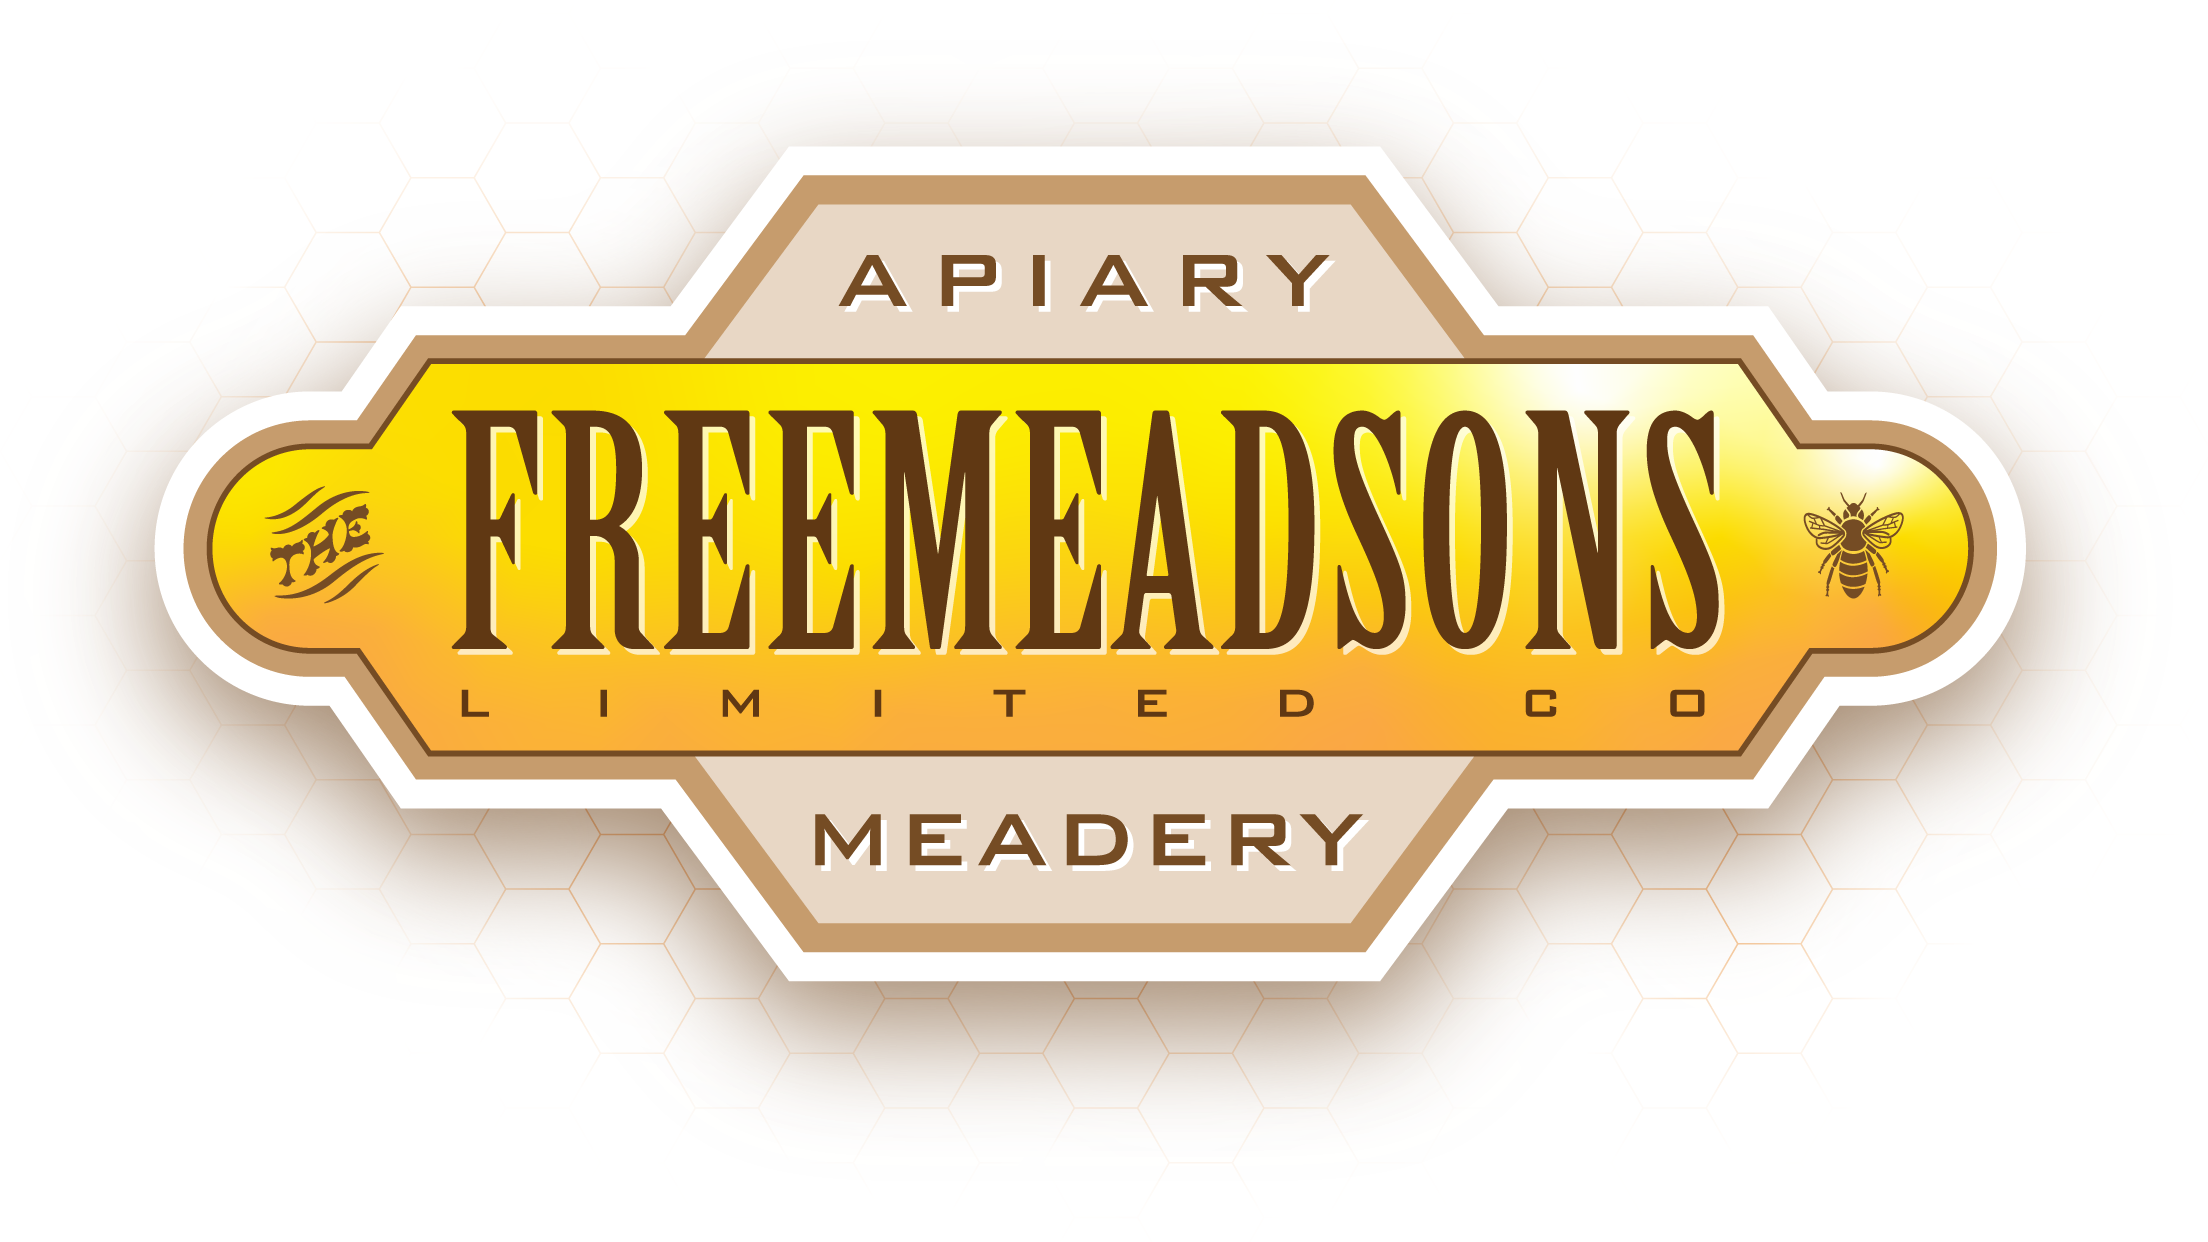 Freemeadsons logo using Birch font